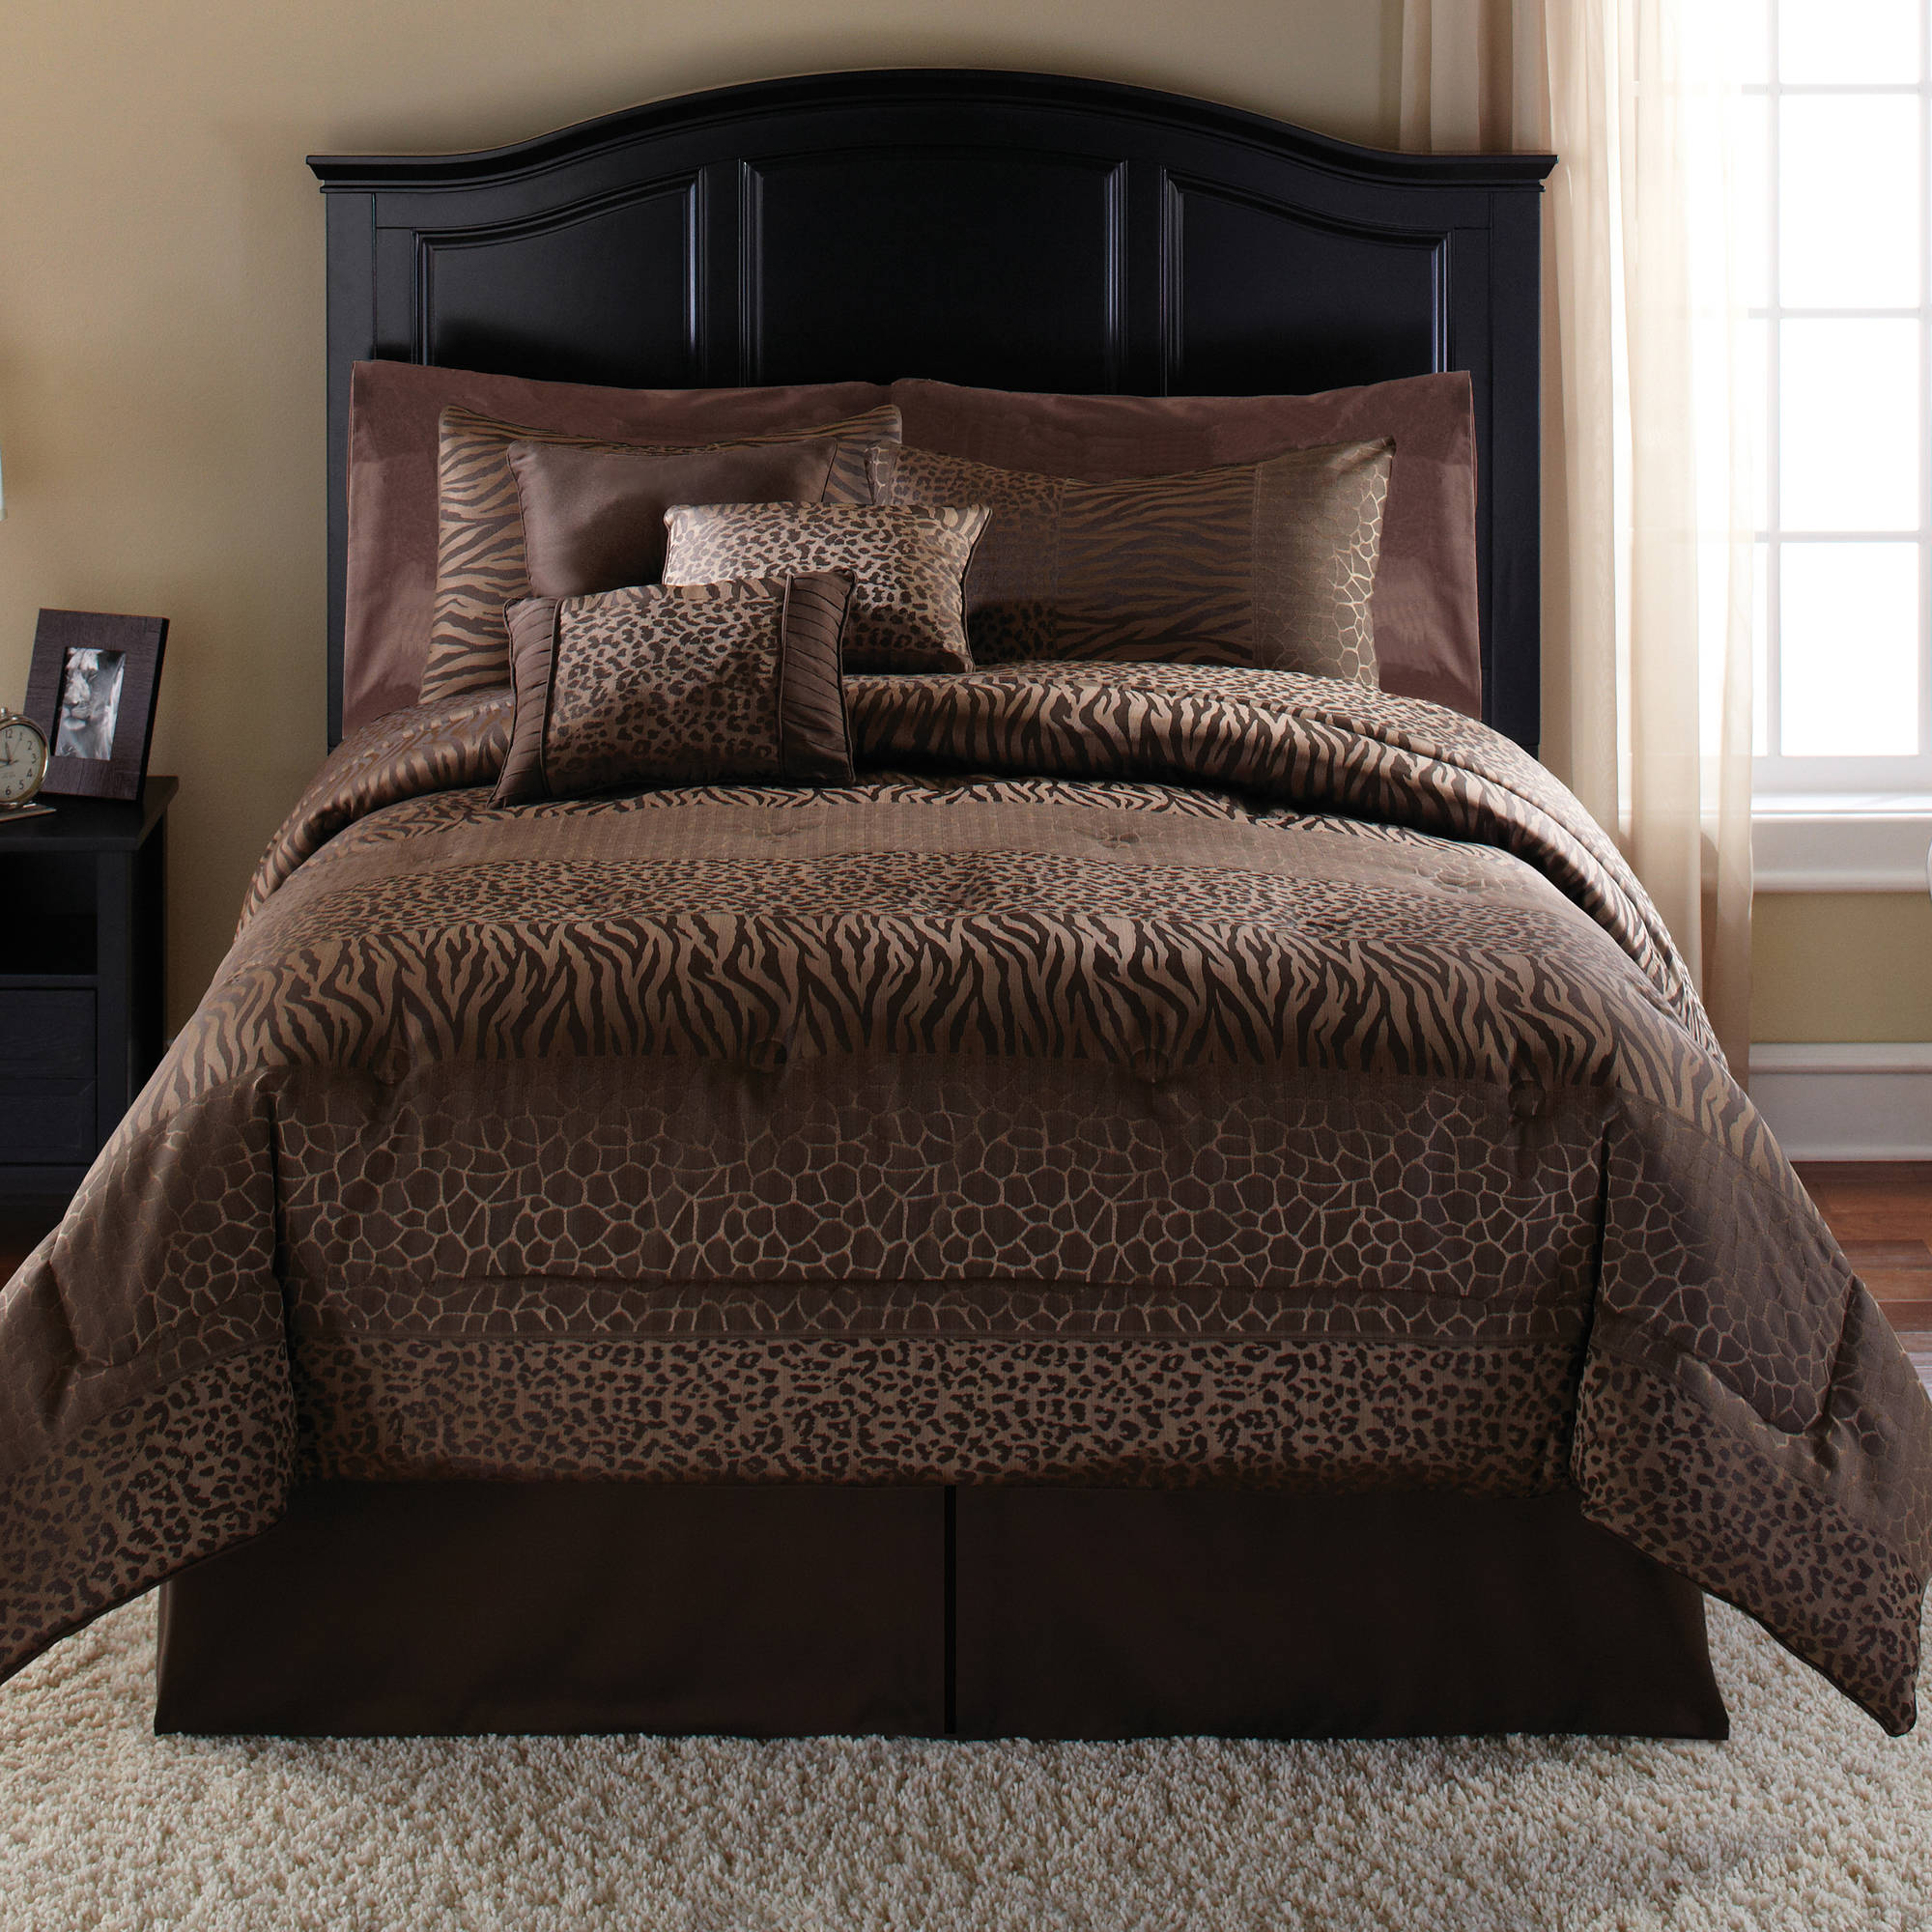 Mainstays Safari 7 Piece Bedding Comforter Set Walmart Com